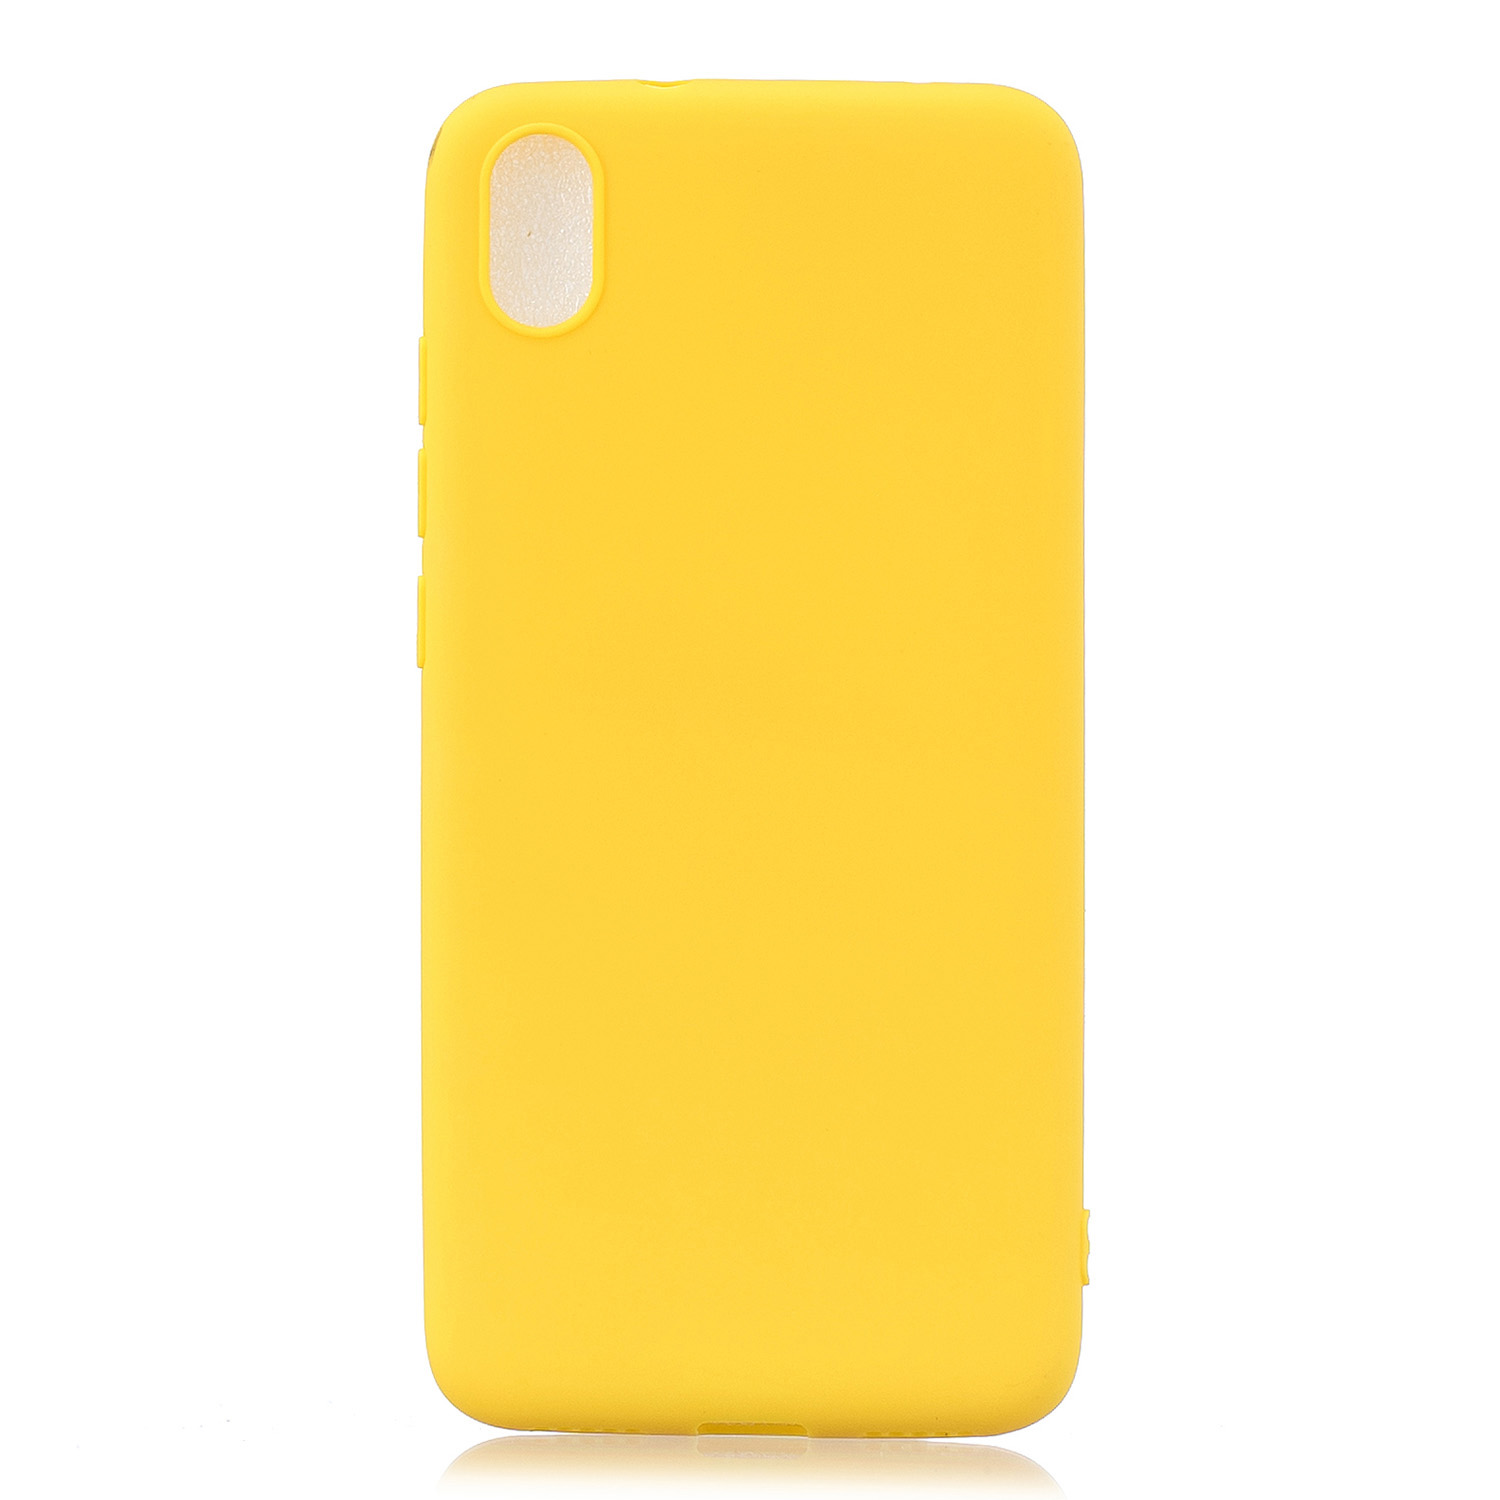 For Redmi 7A Lovely Candy Color Matte TPU Anti-scratch Non-slip Protective Cover Back Case yellow